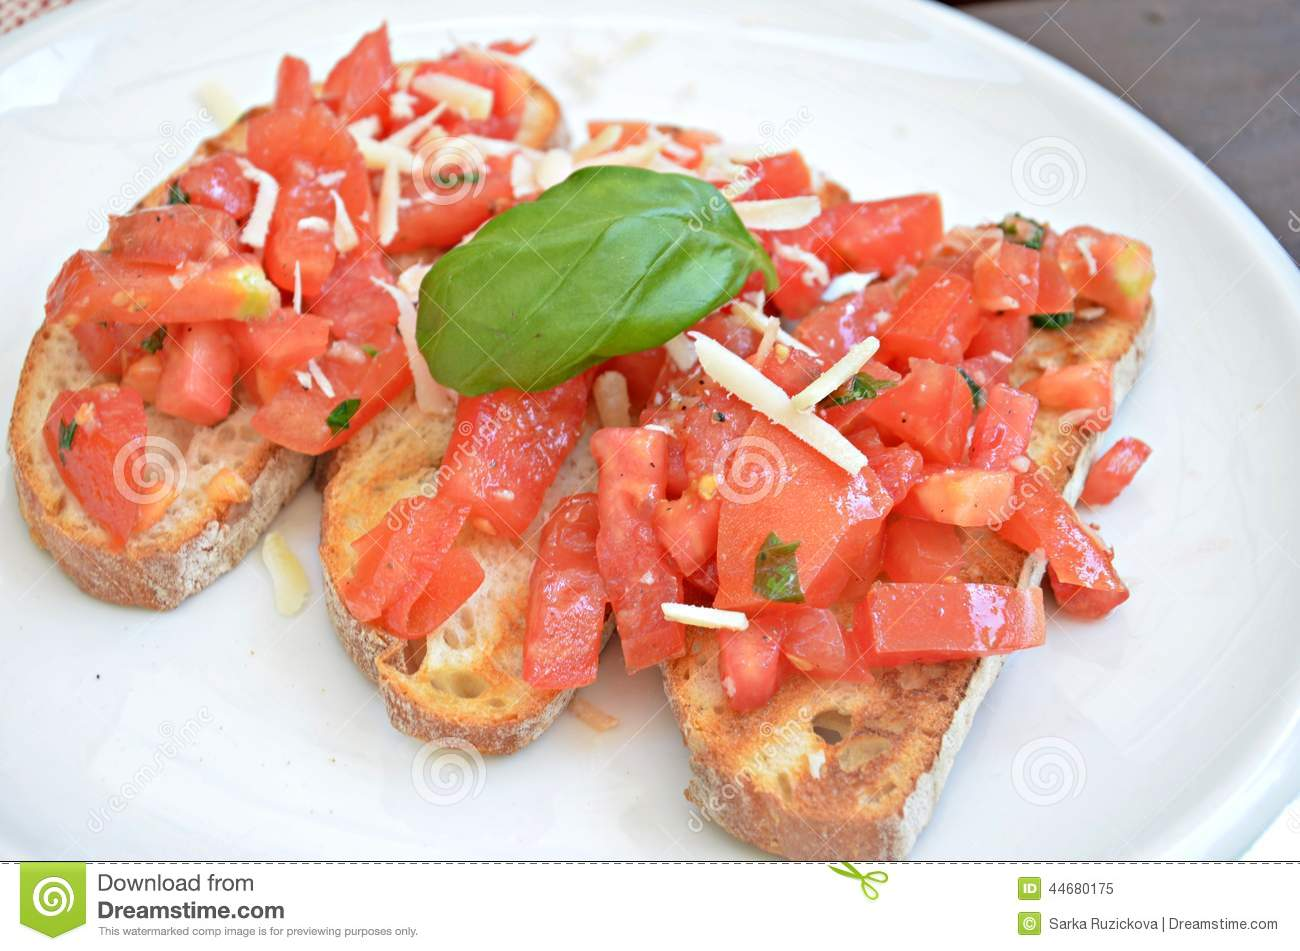 Bruschette with tomato, cheese and basil